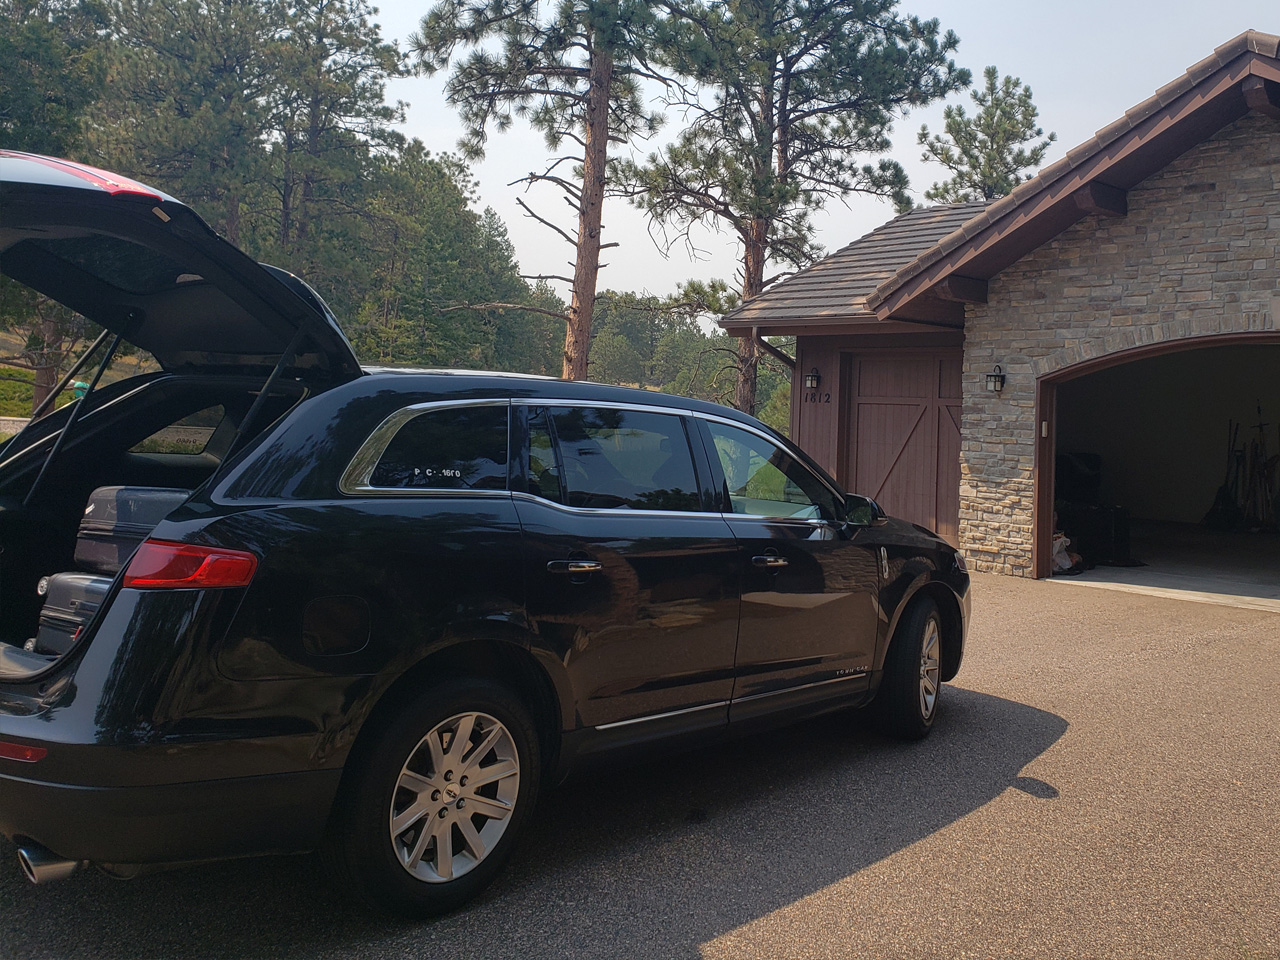 black luxury sedan waiting for a ride outside a home at Genesee Colorado